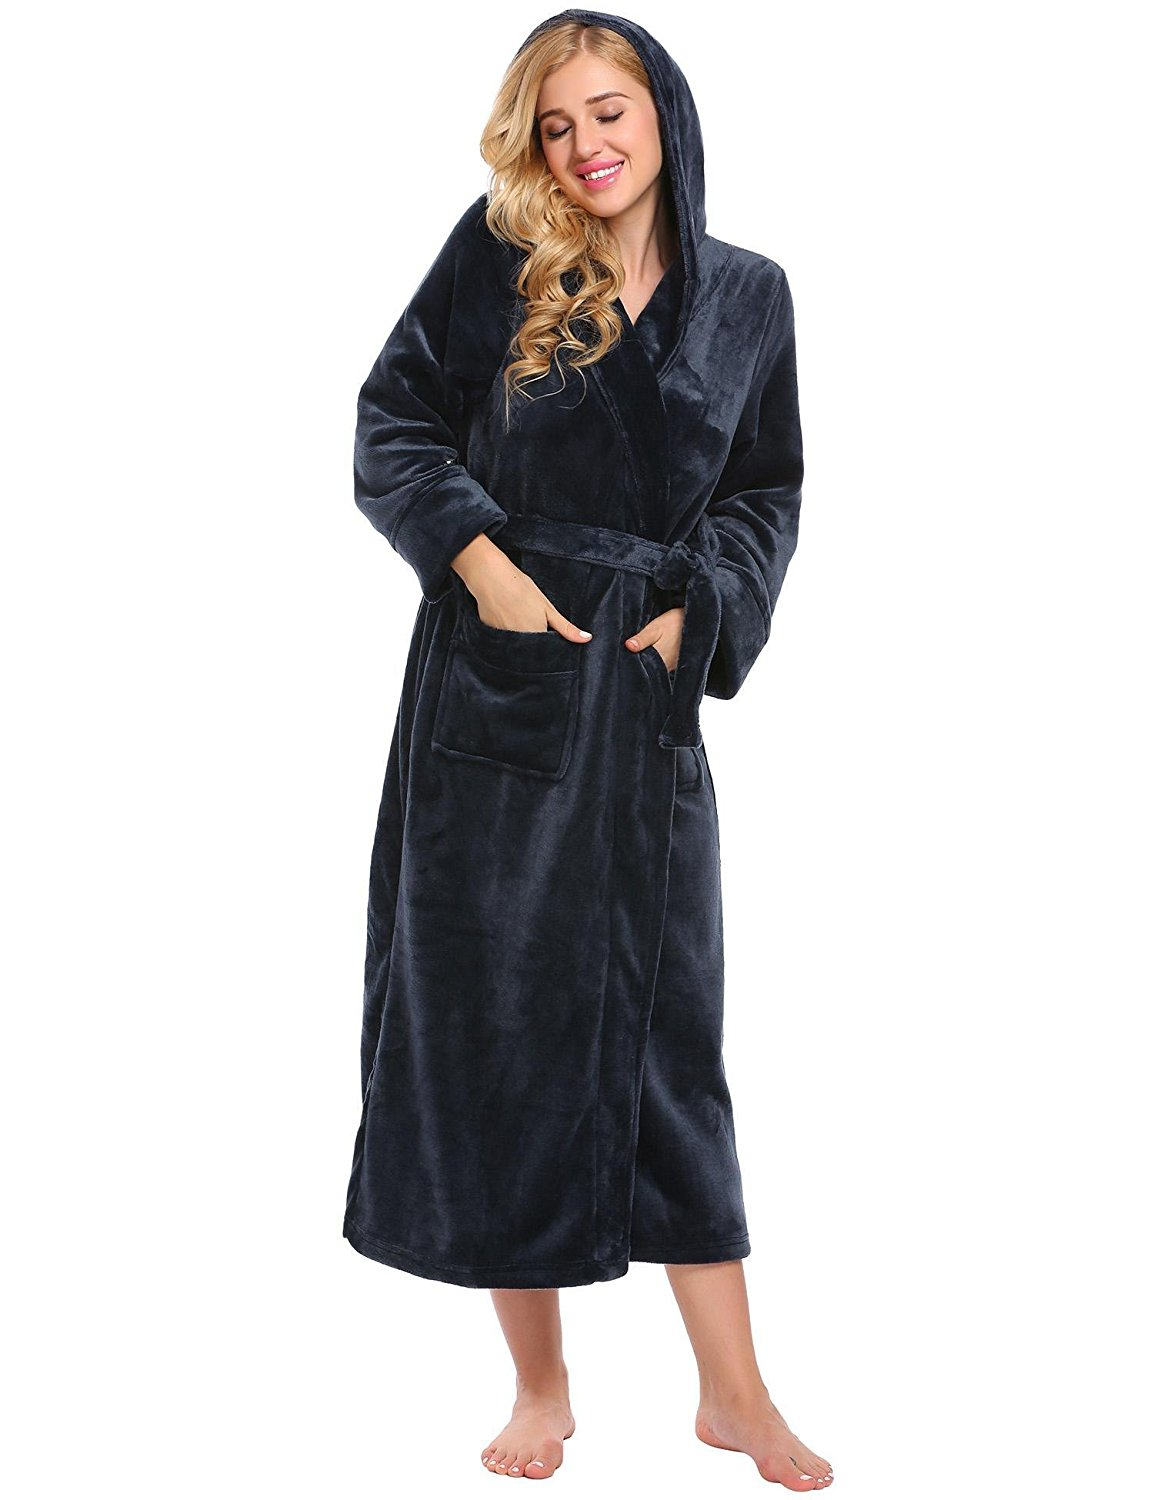 2317d257c7 Get Quotations · Corgy Women Hooded Long Sleeve Kimono Robe Bath Robes for  Women